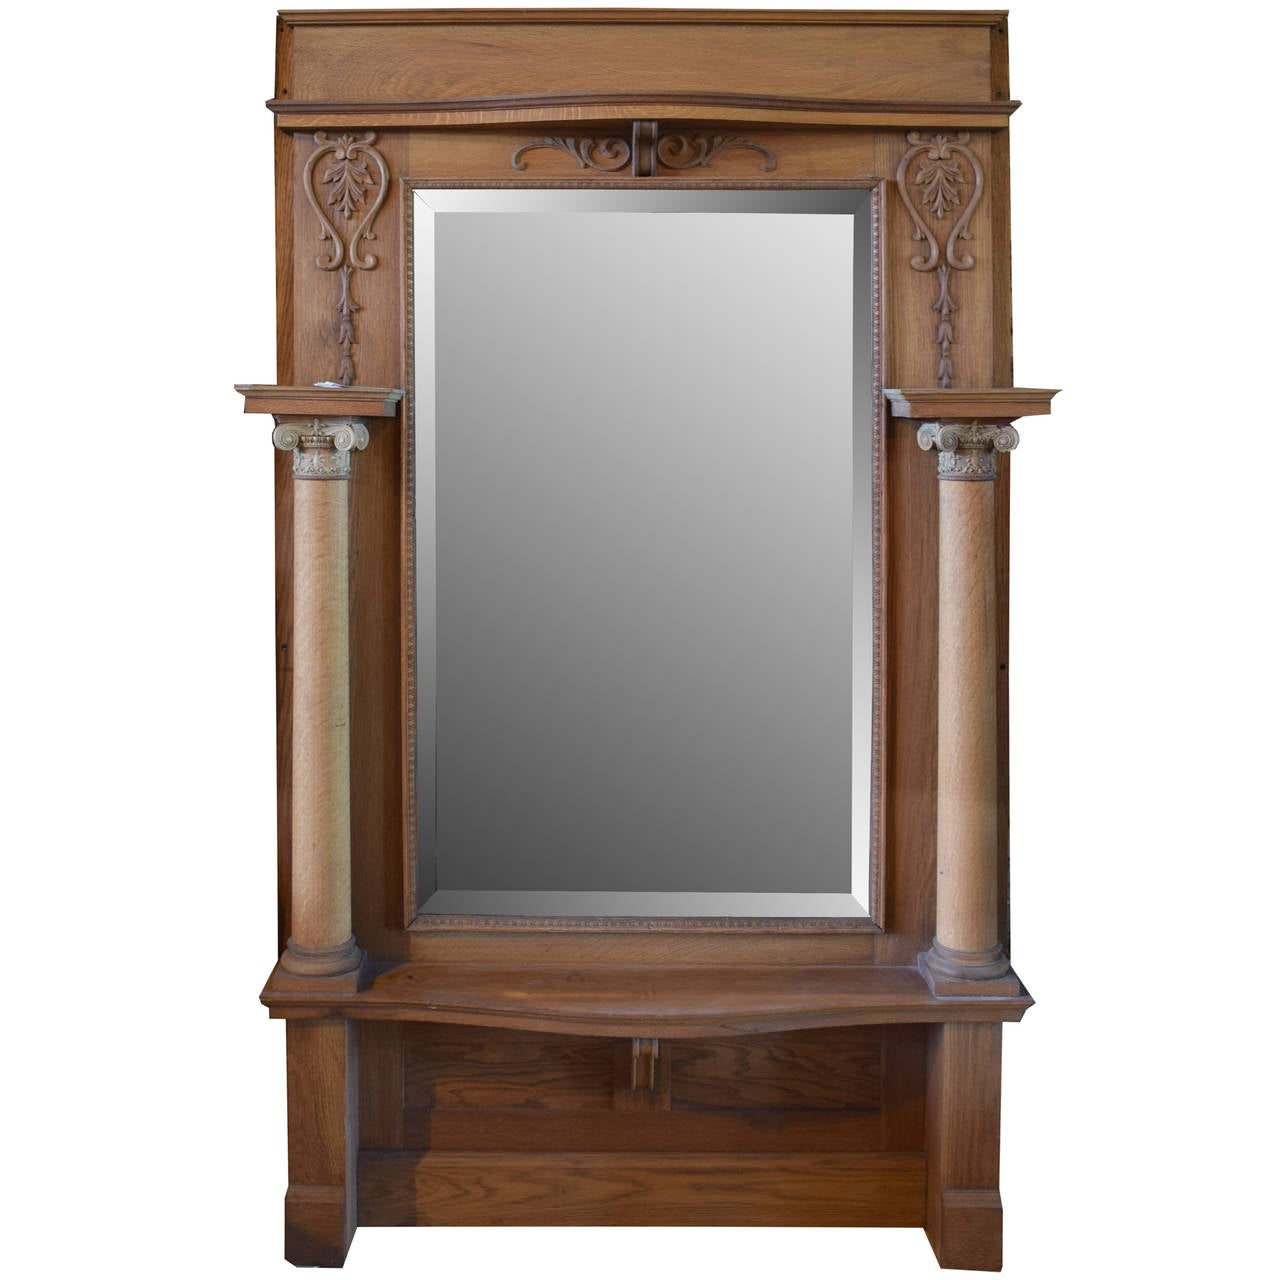 Mirrors & Wall Decor. items. Refine Your Results By: Sale & Clearance. BOGO Offers Furniture Decor Mini Galvanized Mirror Clearance $ Reg $ (5) Pier 1 For Businesses. Furniture, decor and more for your professional space. Learn More.